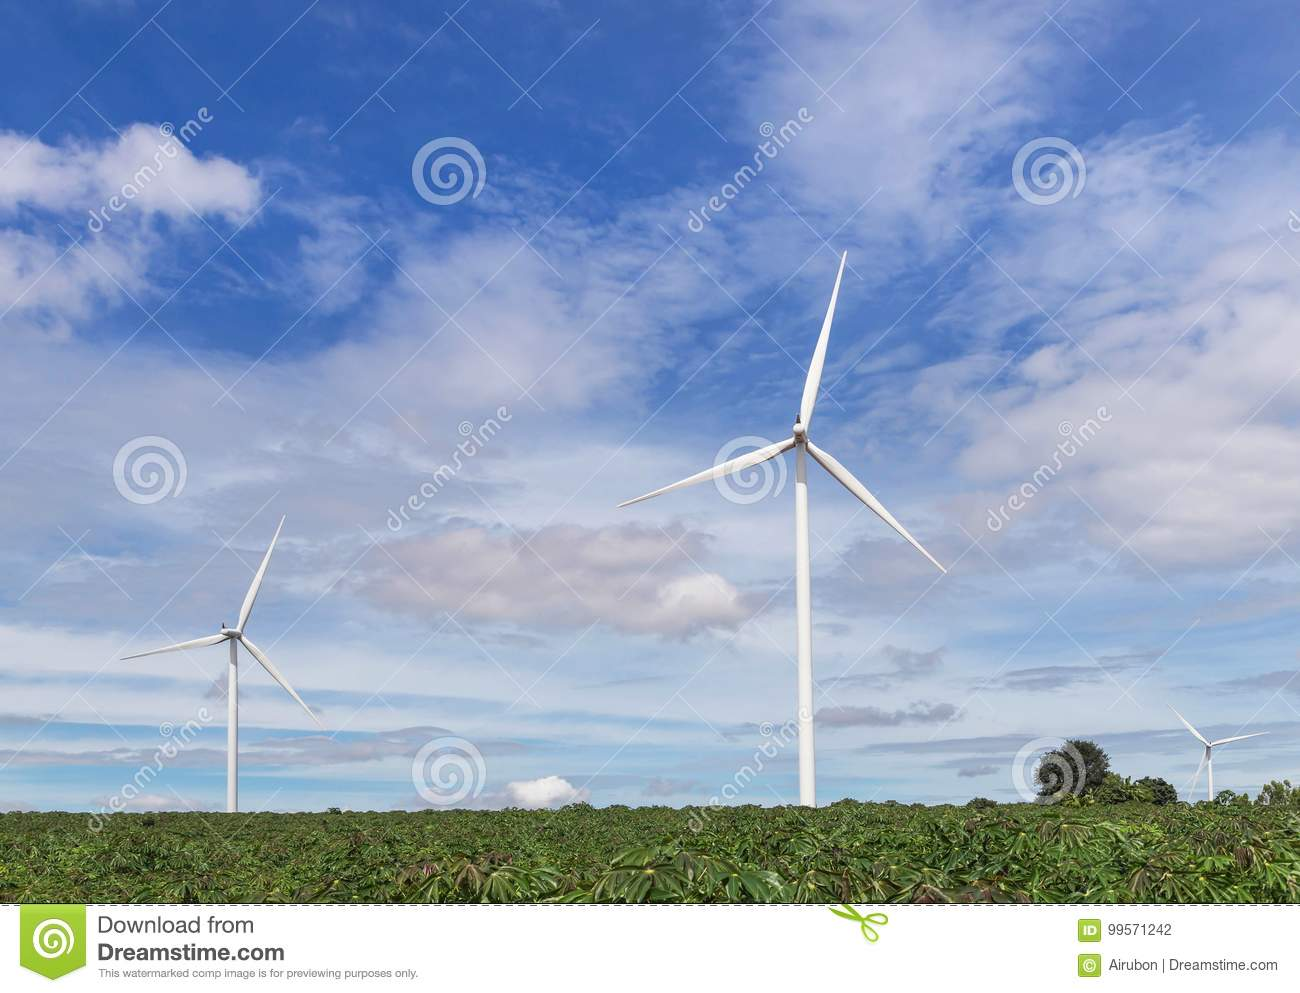 White wind turbines alternative renewable energy from nature in wind power station under blue sky backgroun